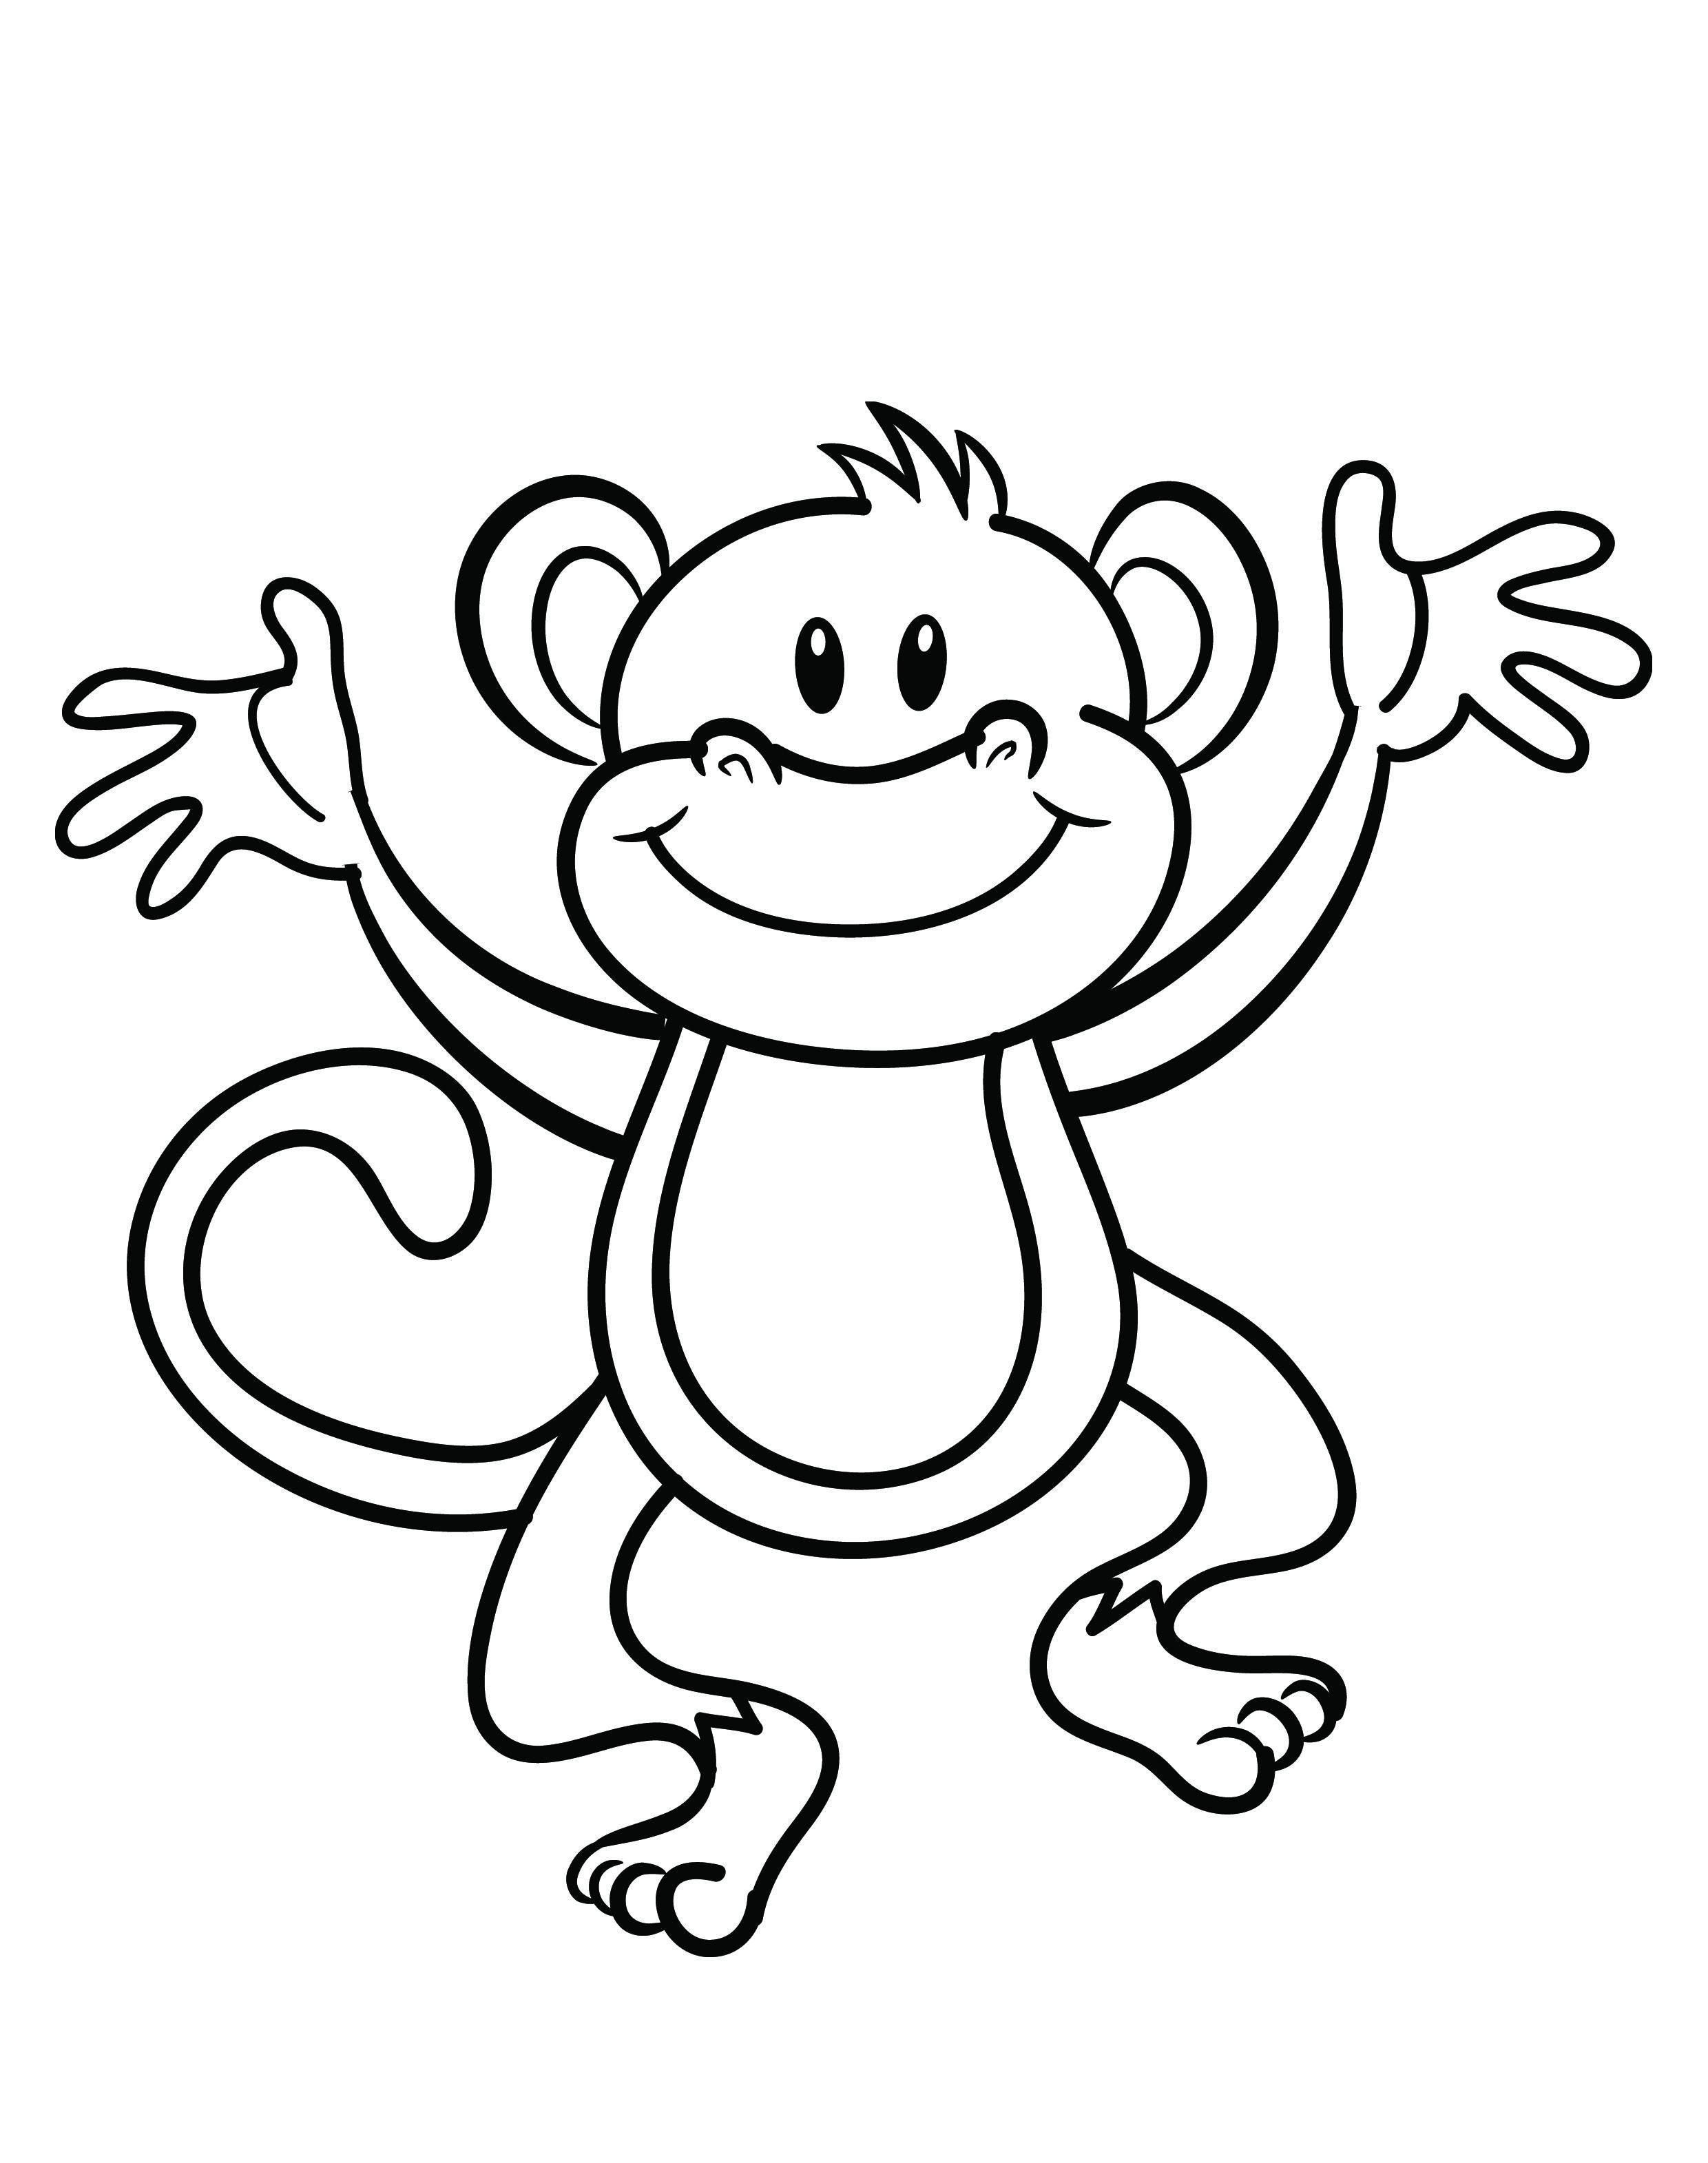 Free printable monkey coloring page | cj 1st birthday | Pinterest ...